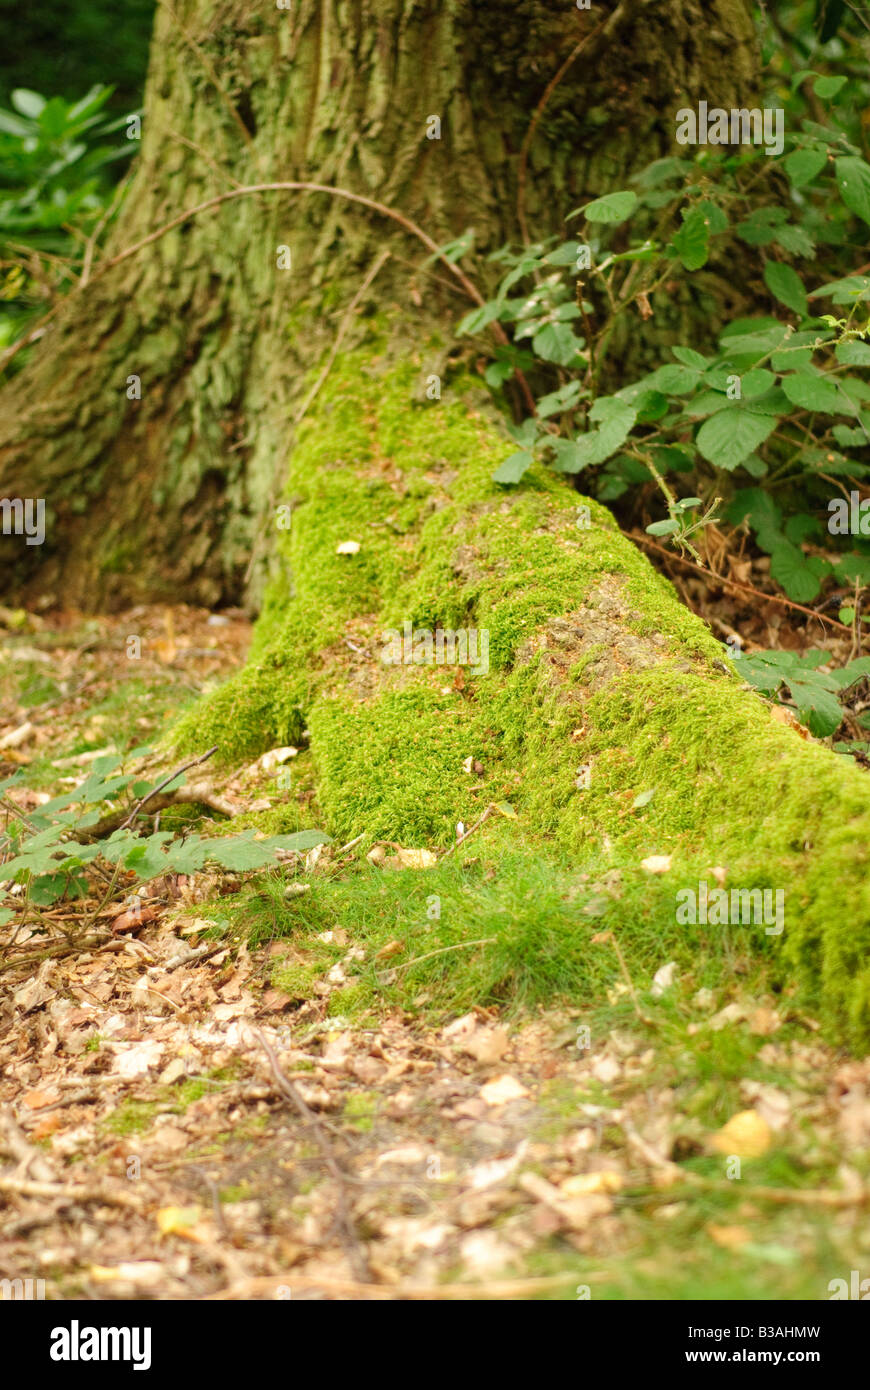 Moss on a tree stump Stock Photo